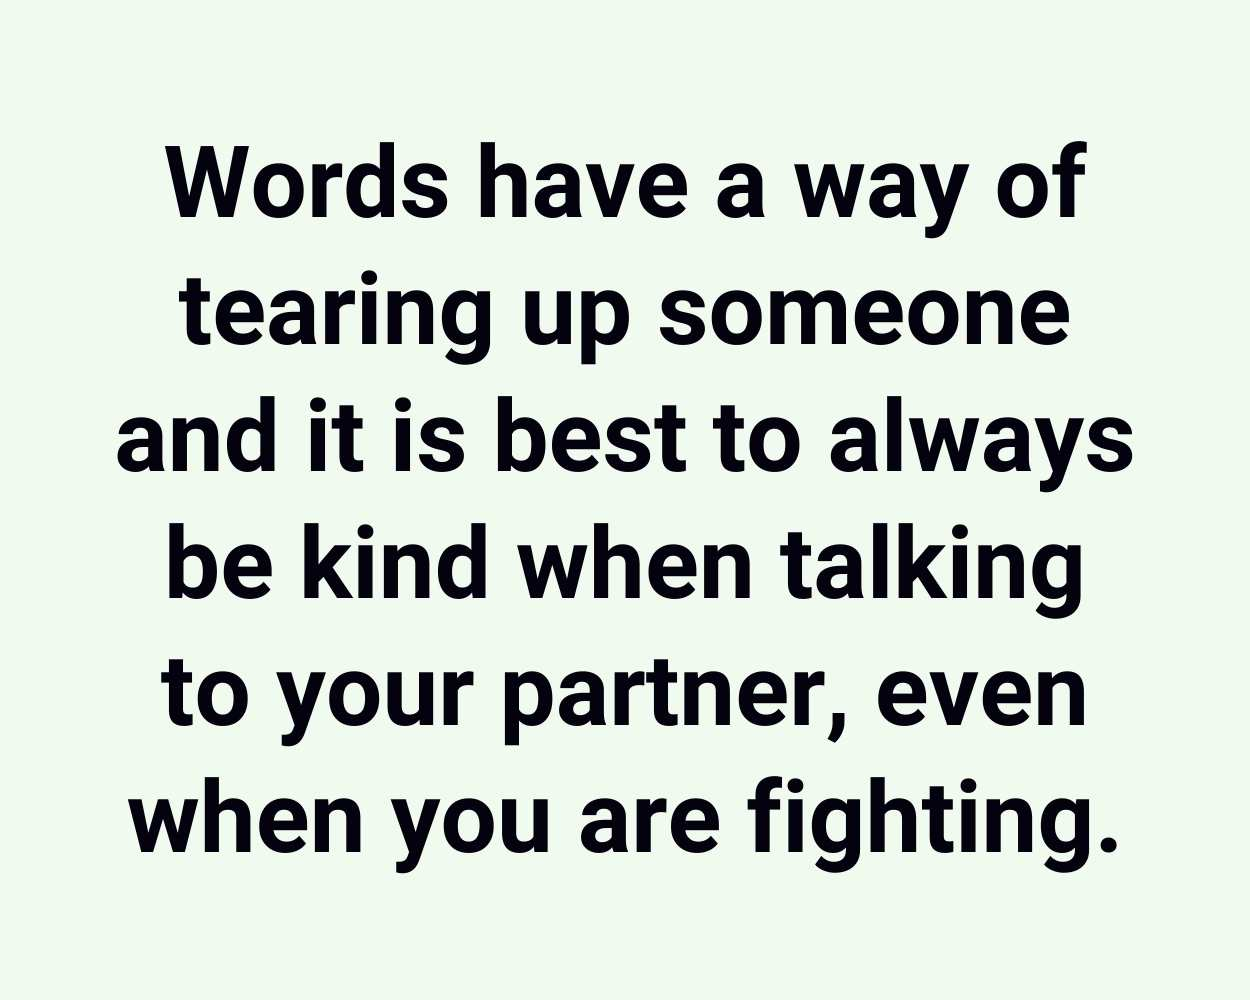 Words have a way of tearing up someone and it is best to always